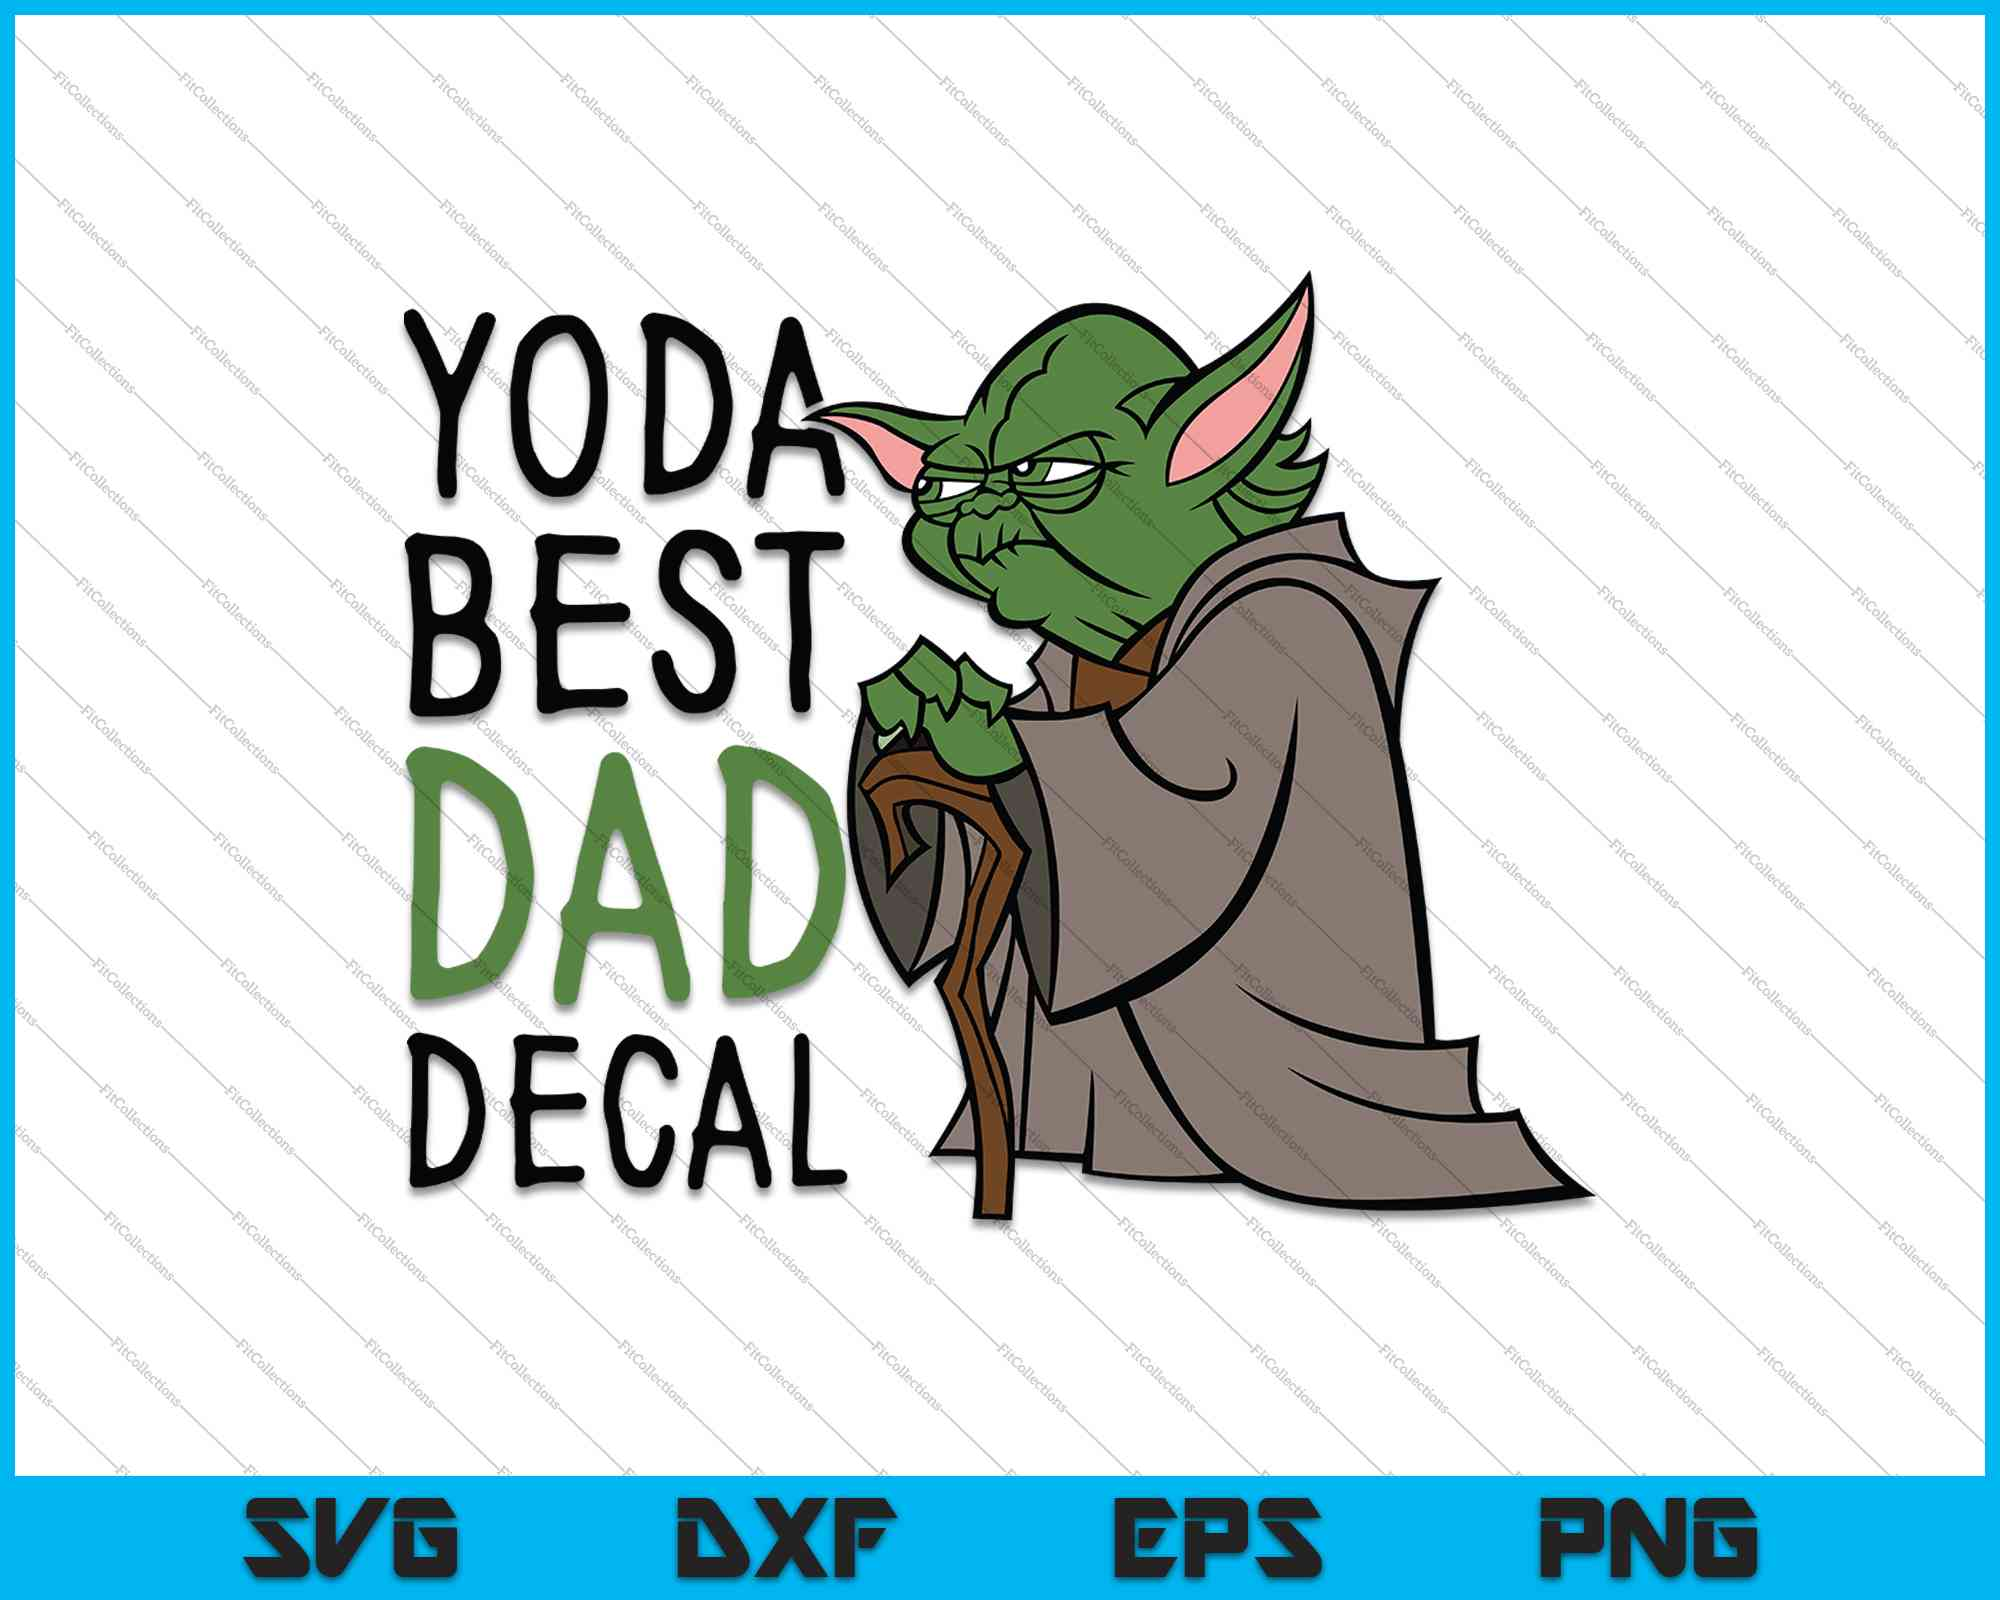 Free Our father's day cards honor dads with styles from traditional to trendy, and you can choose from options like photo layouts, rib ticklers, classic illustrations, and fancy. Yoda Best Dad Decal Svg Png Cutting Printable Files Creativeusart SVG, PNG, EPS, DXF File